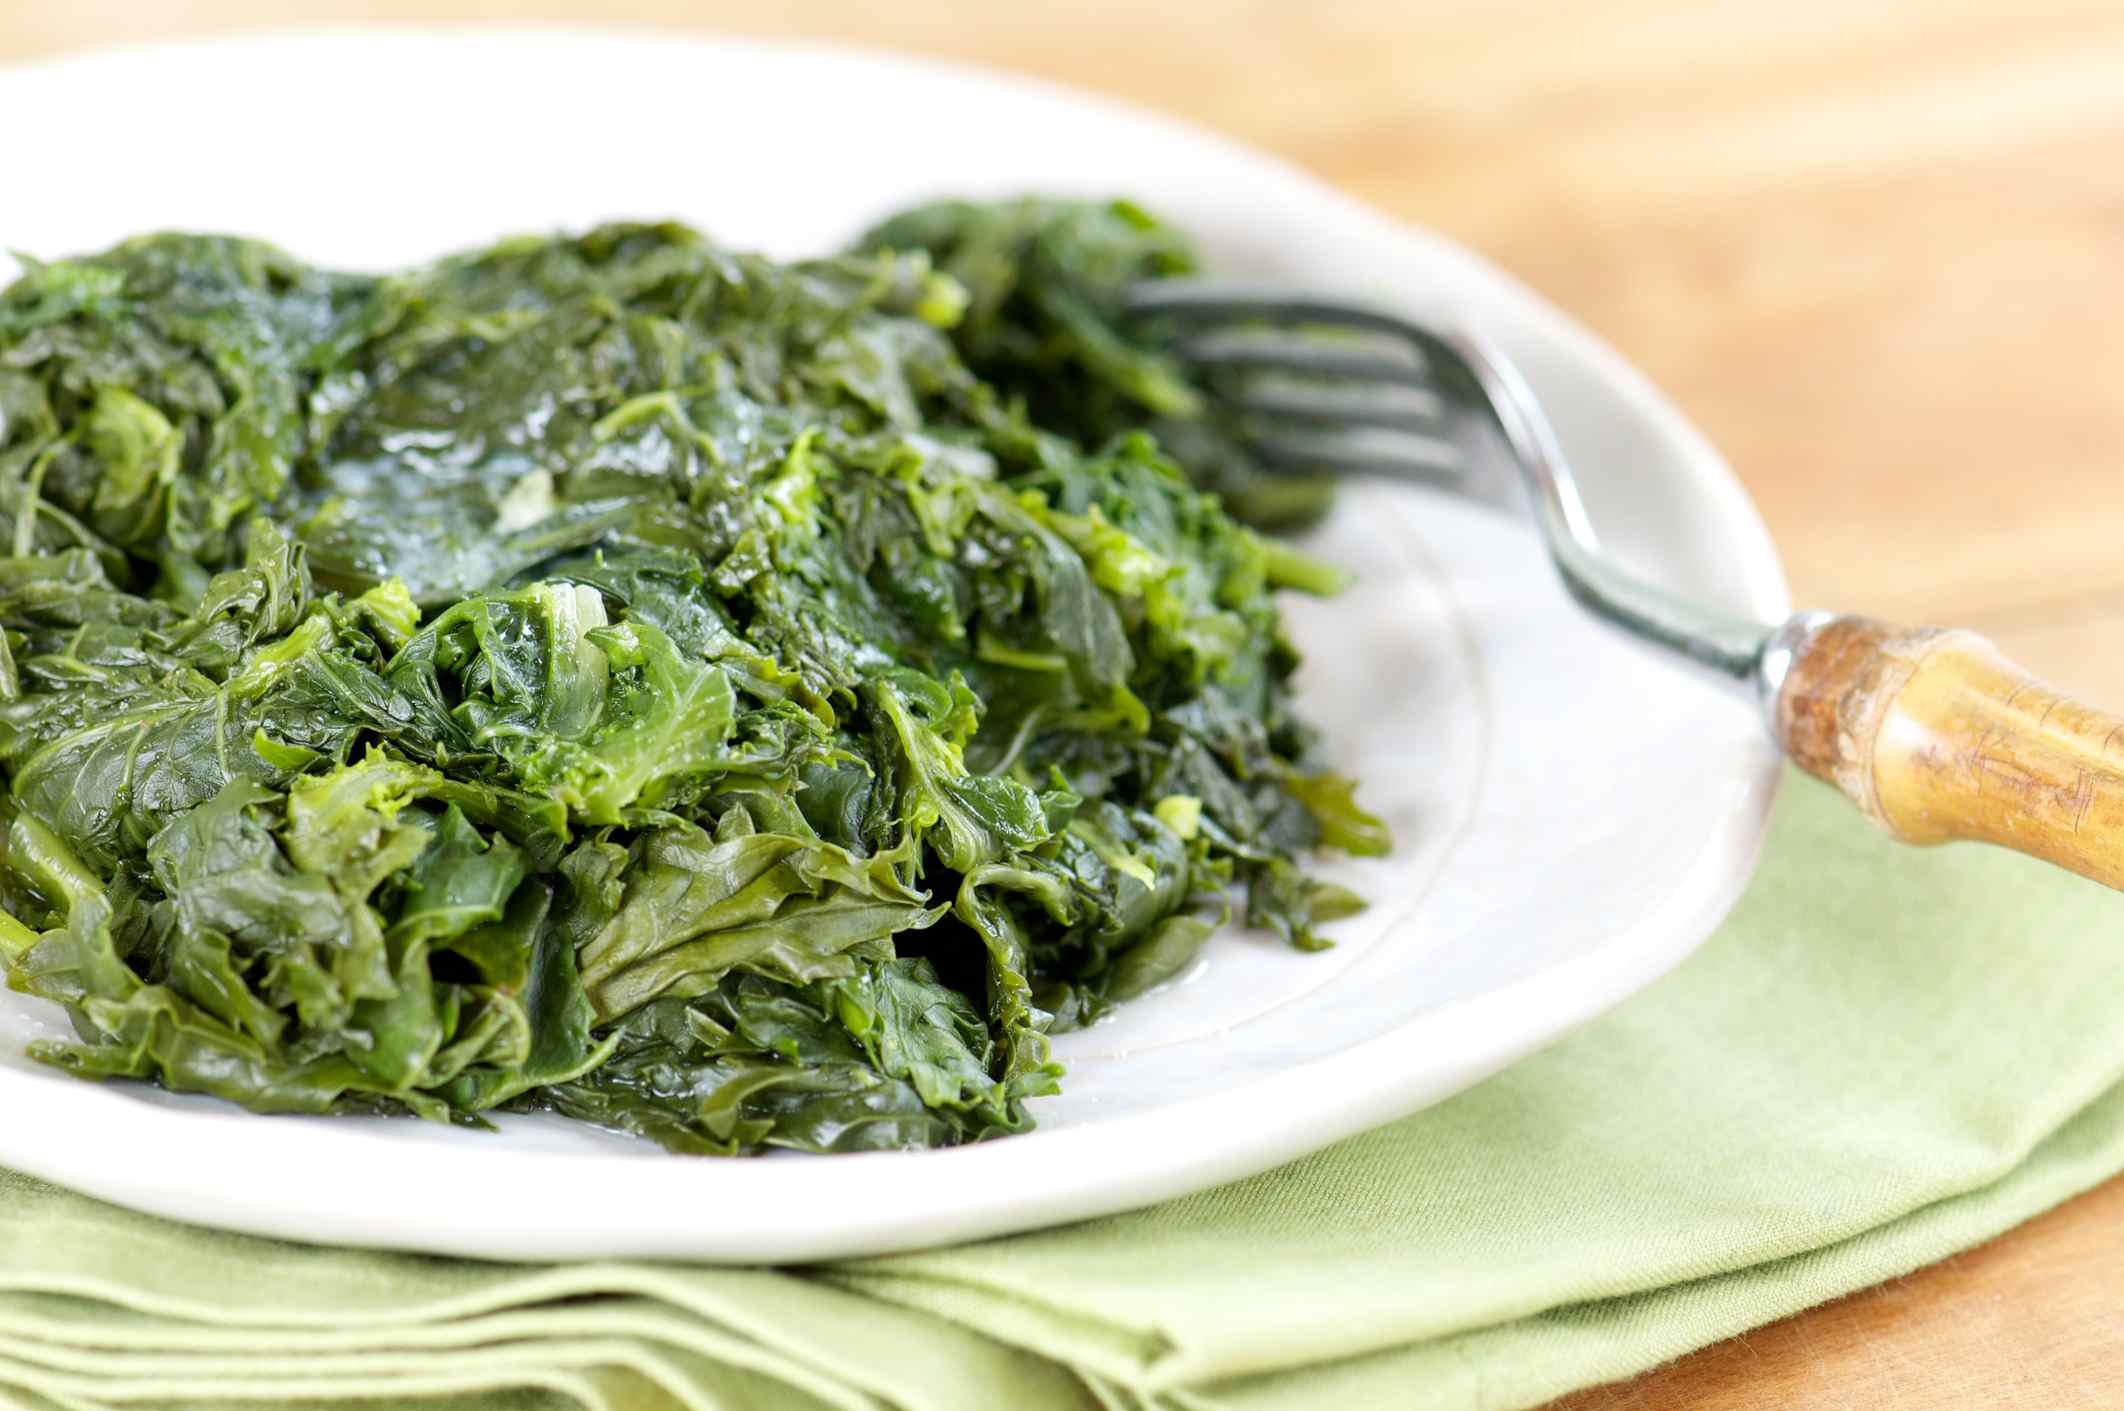 Braised greens on a plate